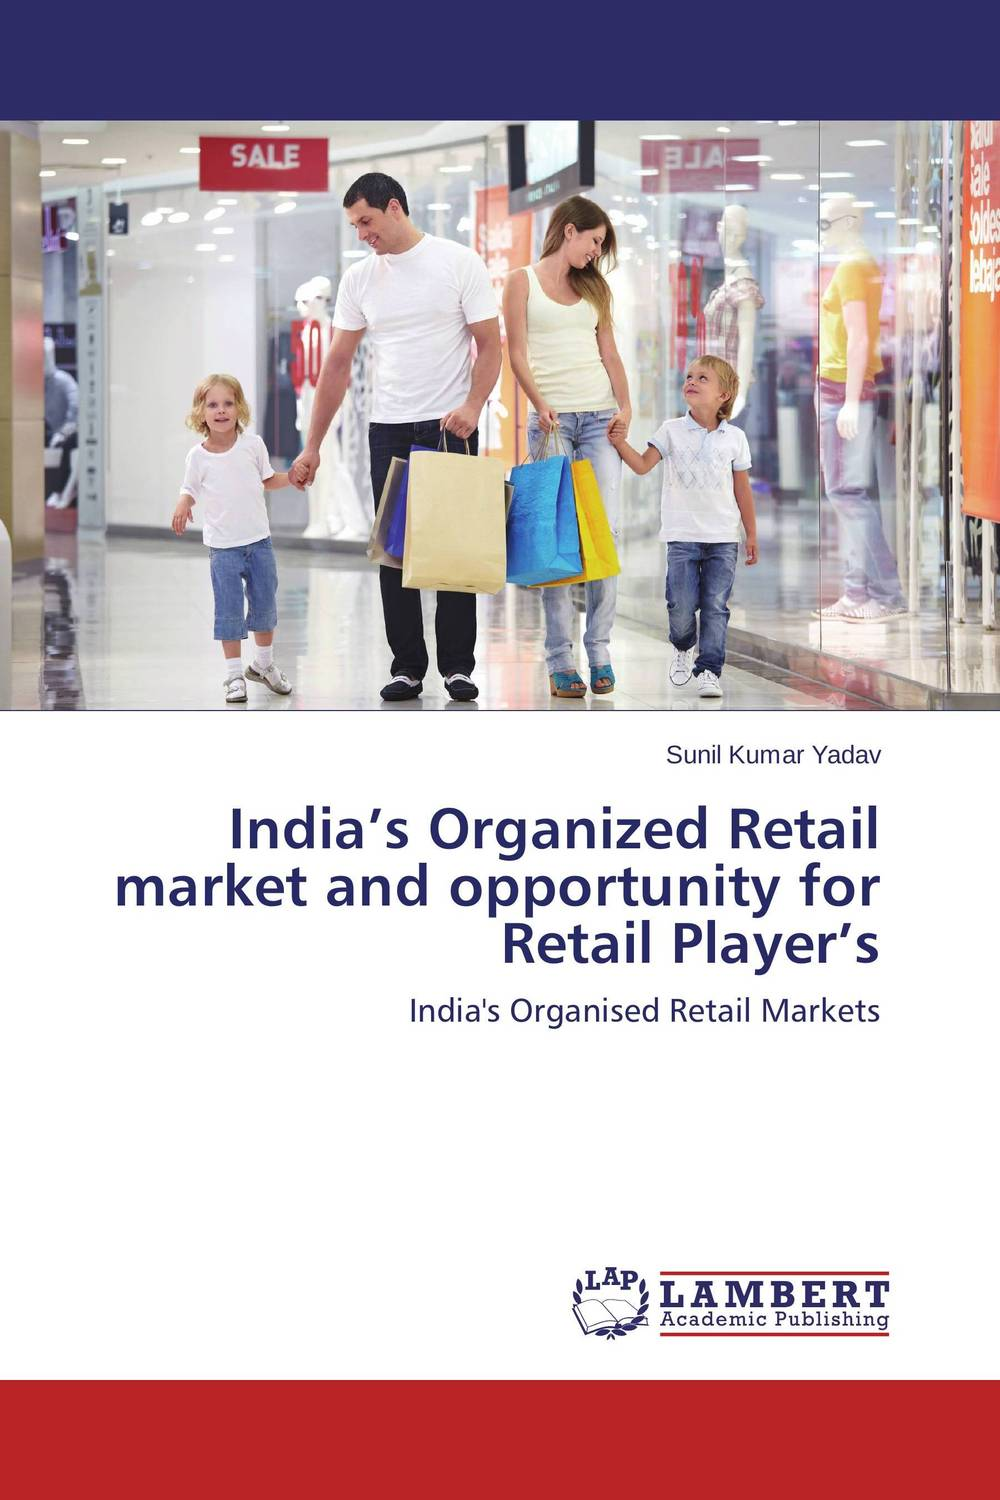 India's Organized Retail market and opportunity for Retail Player's